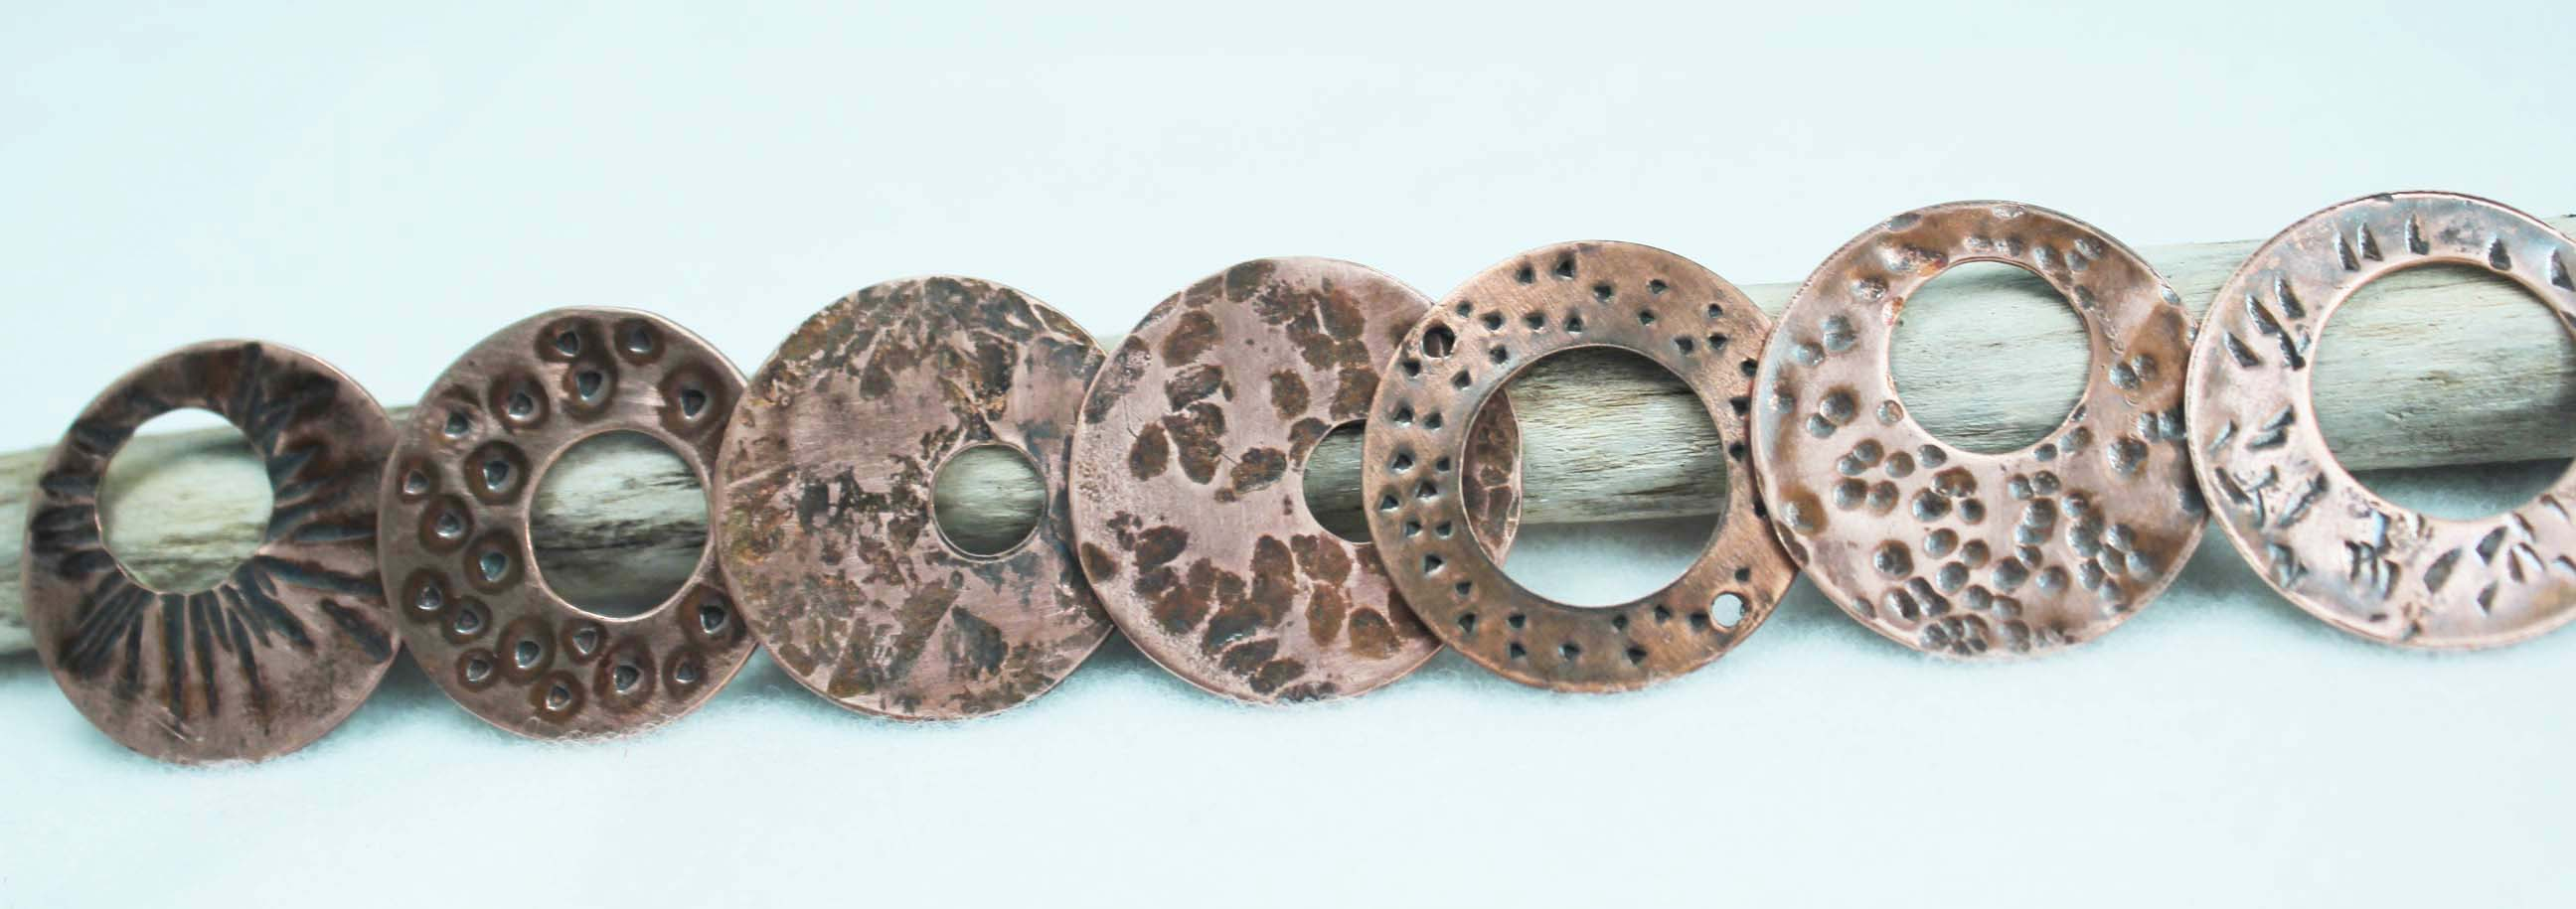 Seven copper discs sporting a variety of added textures